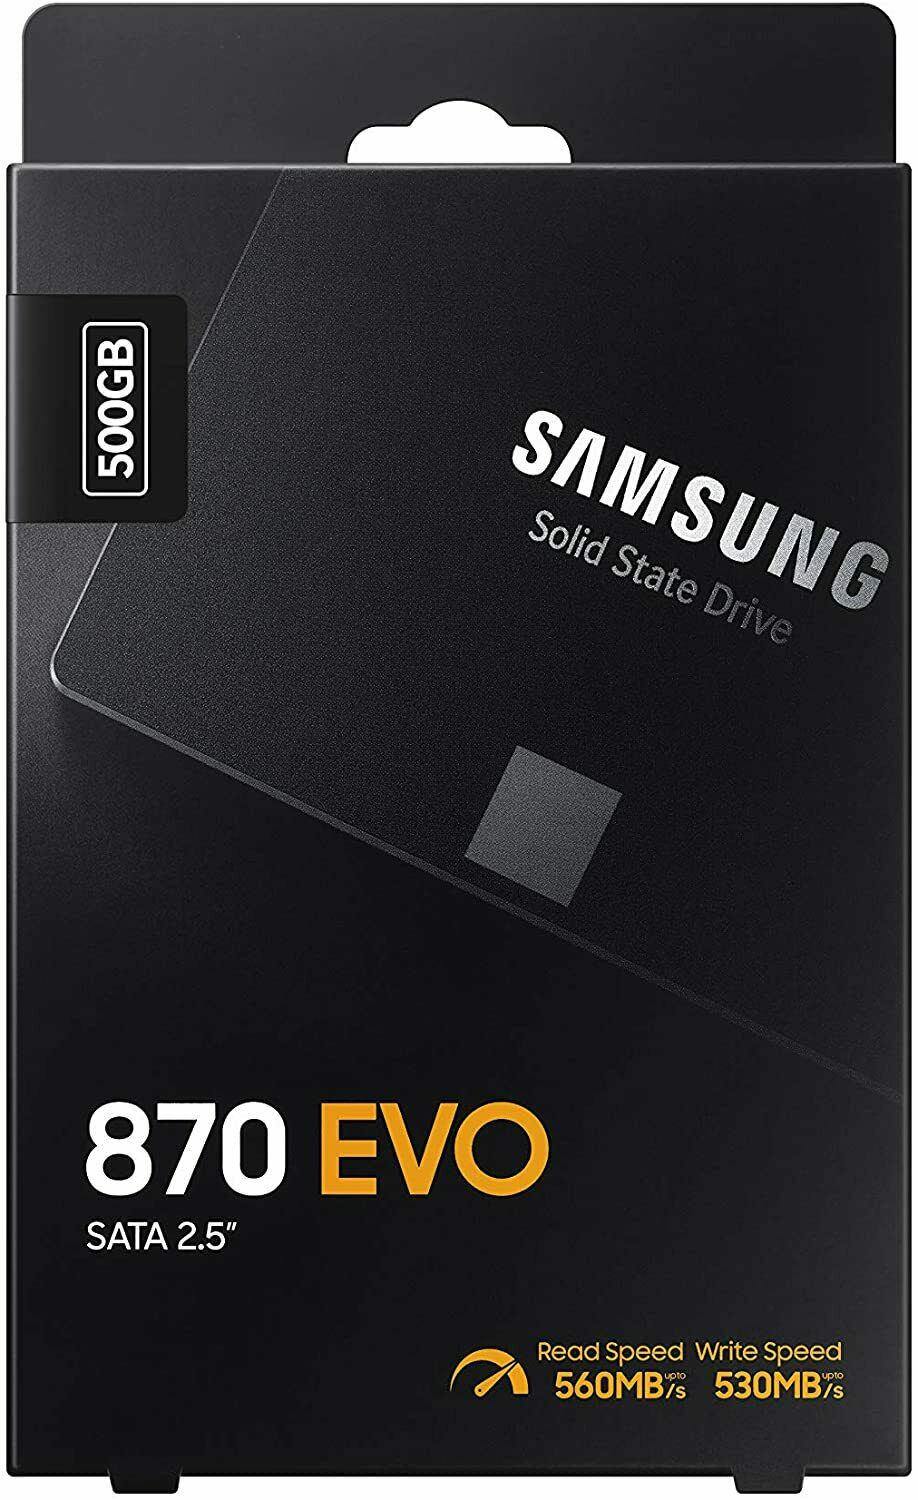 Samsung 870 EVO 500GB Internal SSD 2.5 inch MZ-77E500B/AM Solid State Drive. Buy it now for 69.95